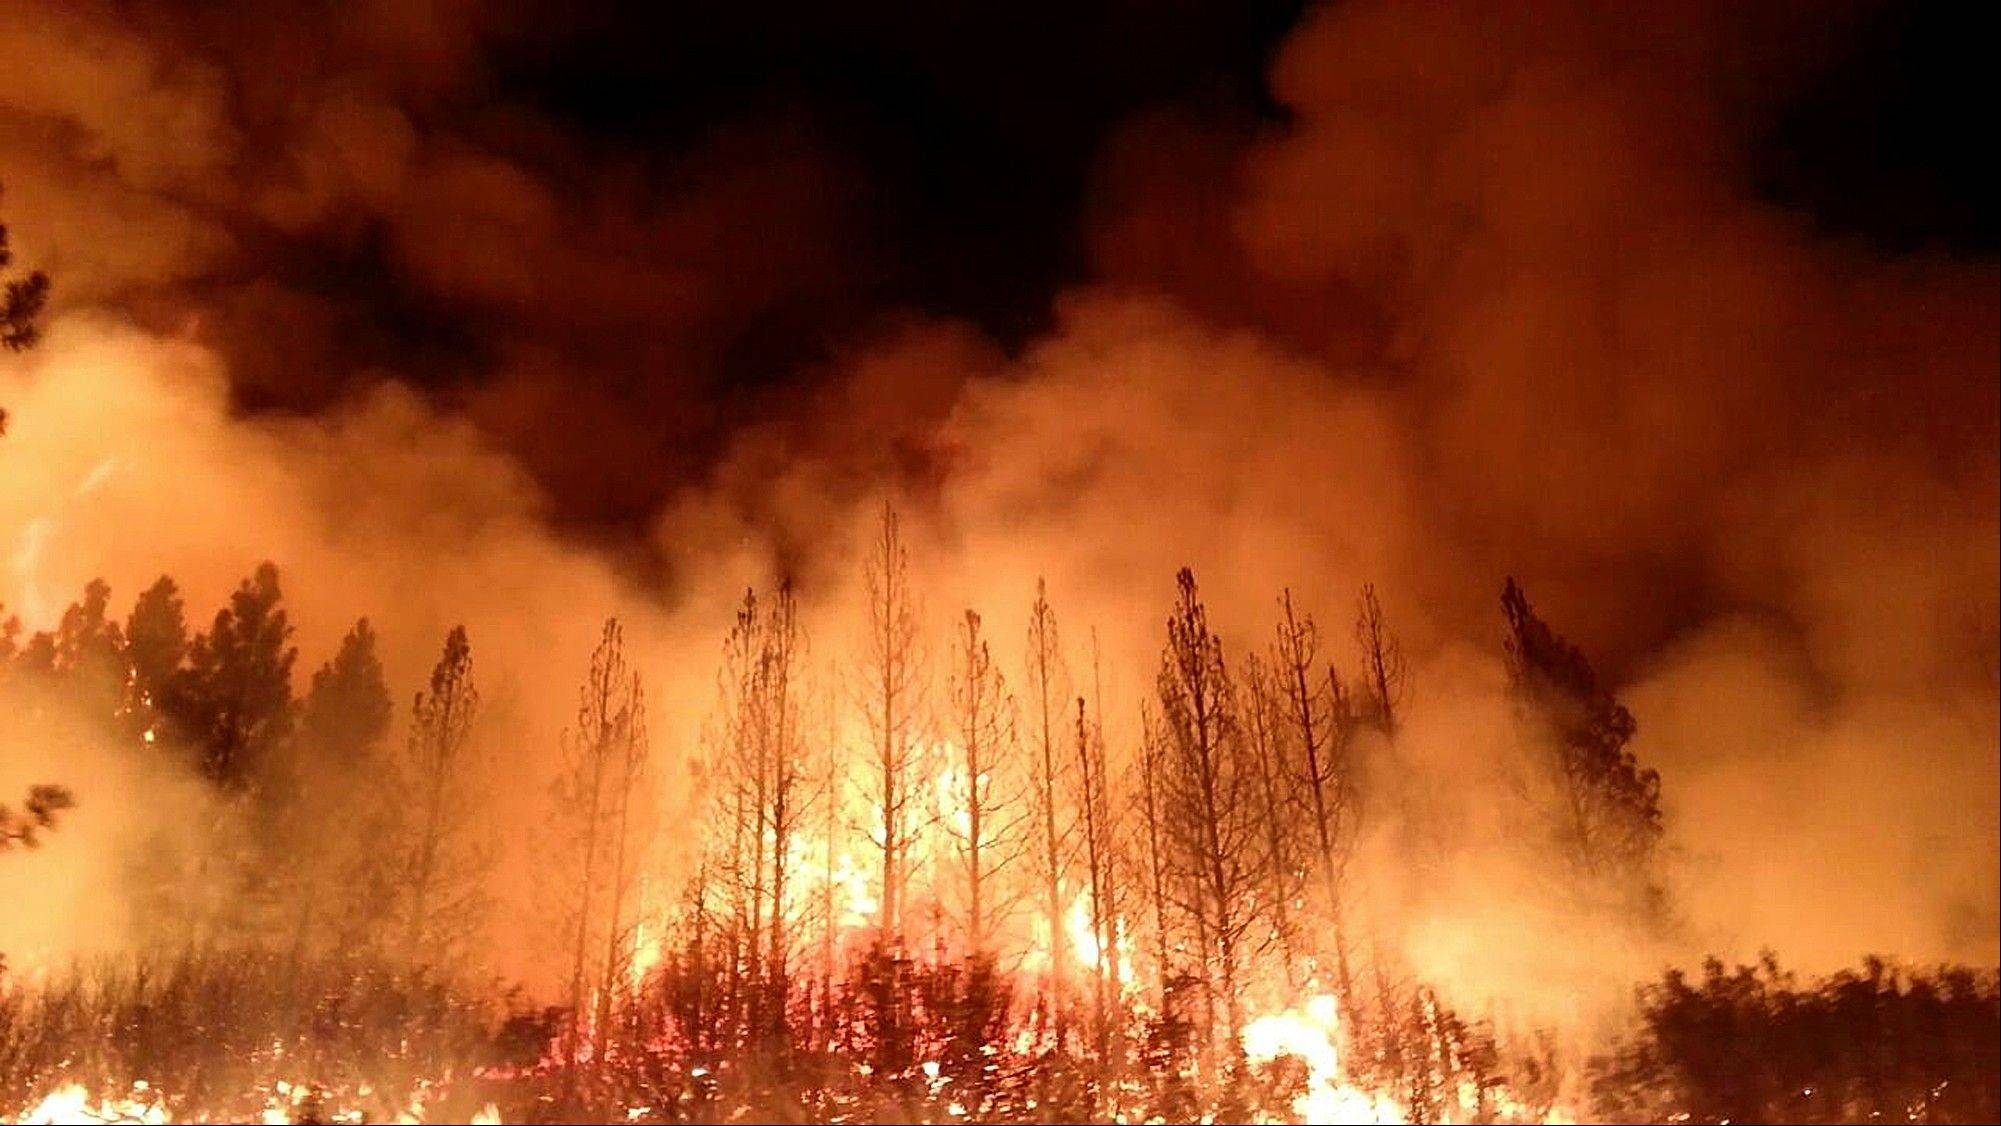 The wildfire outside Yosemite National Park � one of more than 50 major brush blazes burning across the western U.S. � more than tripled in size overnight and still threatens about 2,500 homes, hotels and camp buildings.